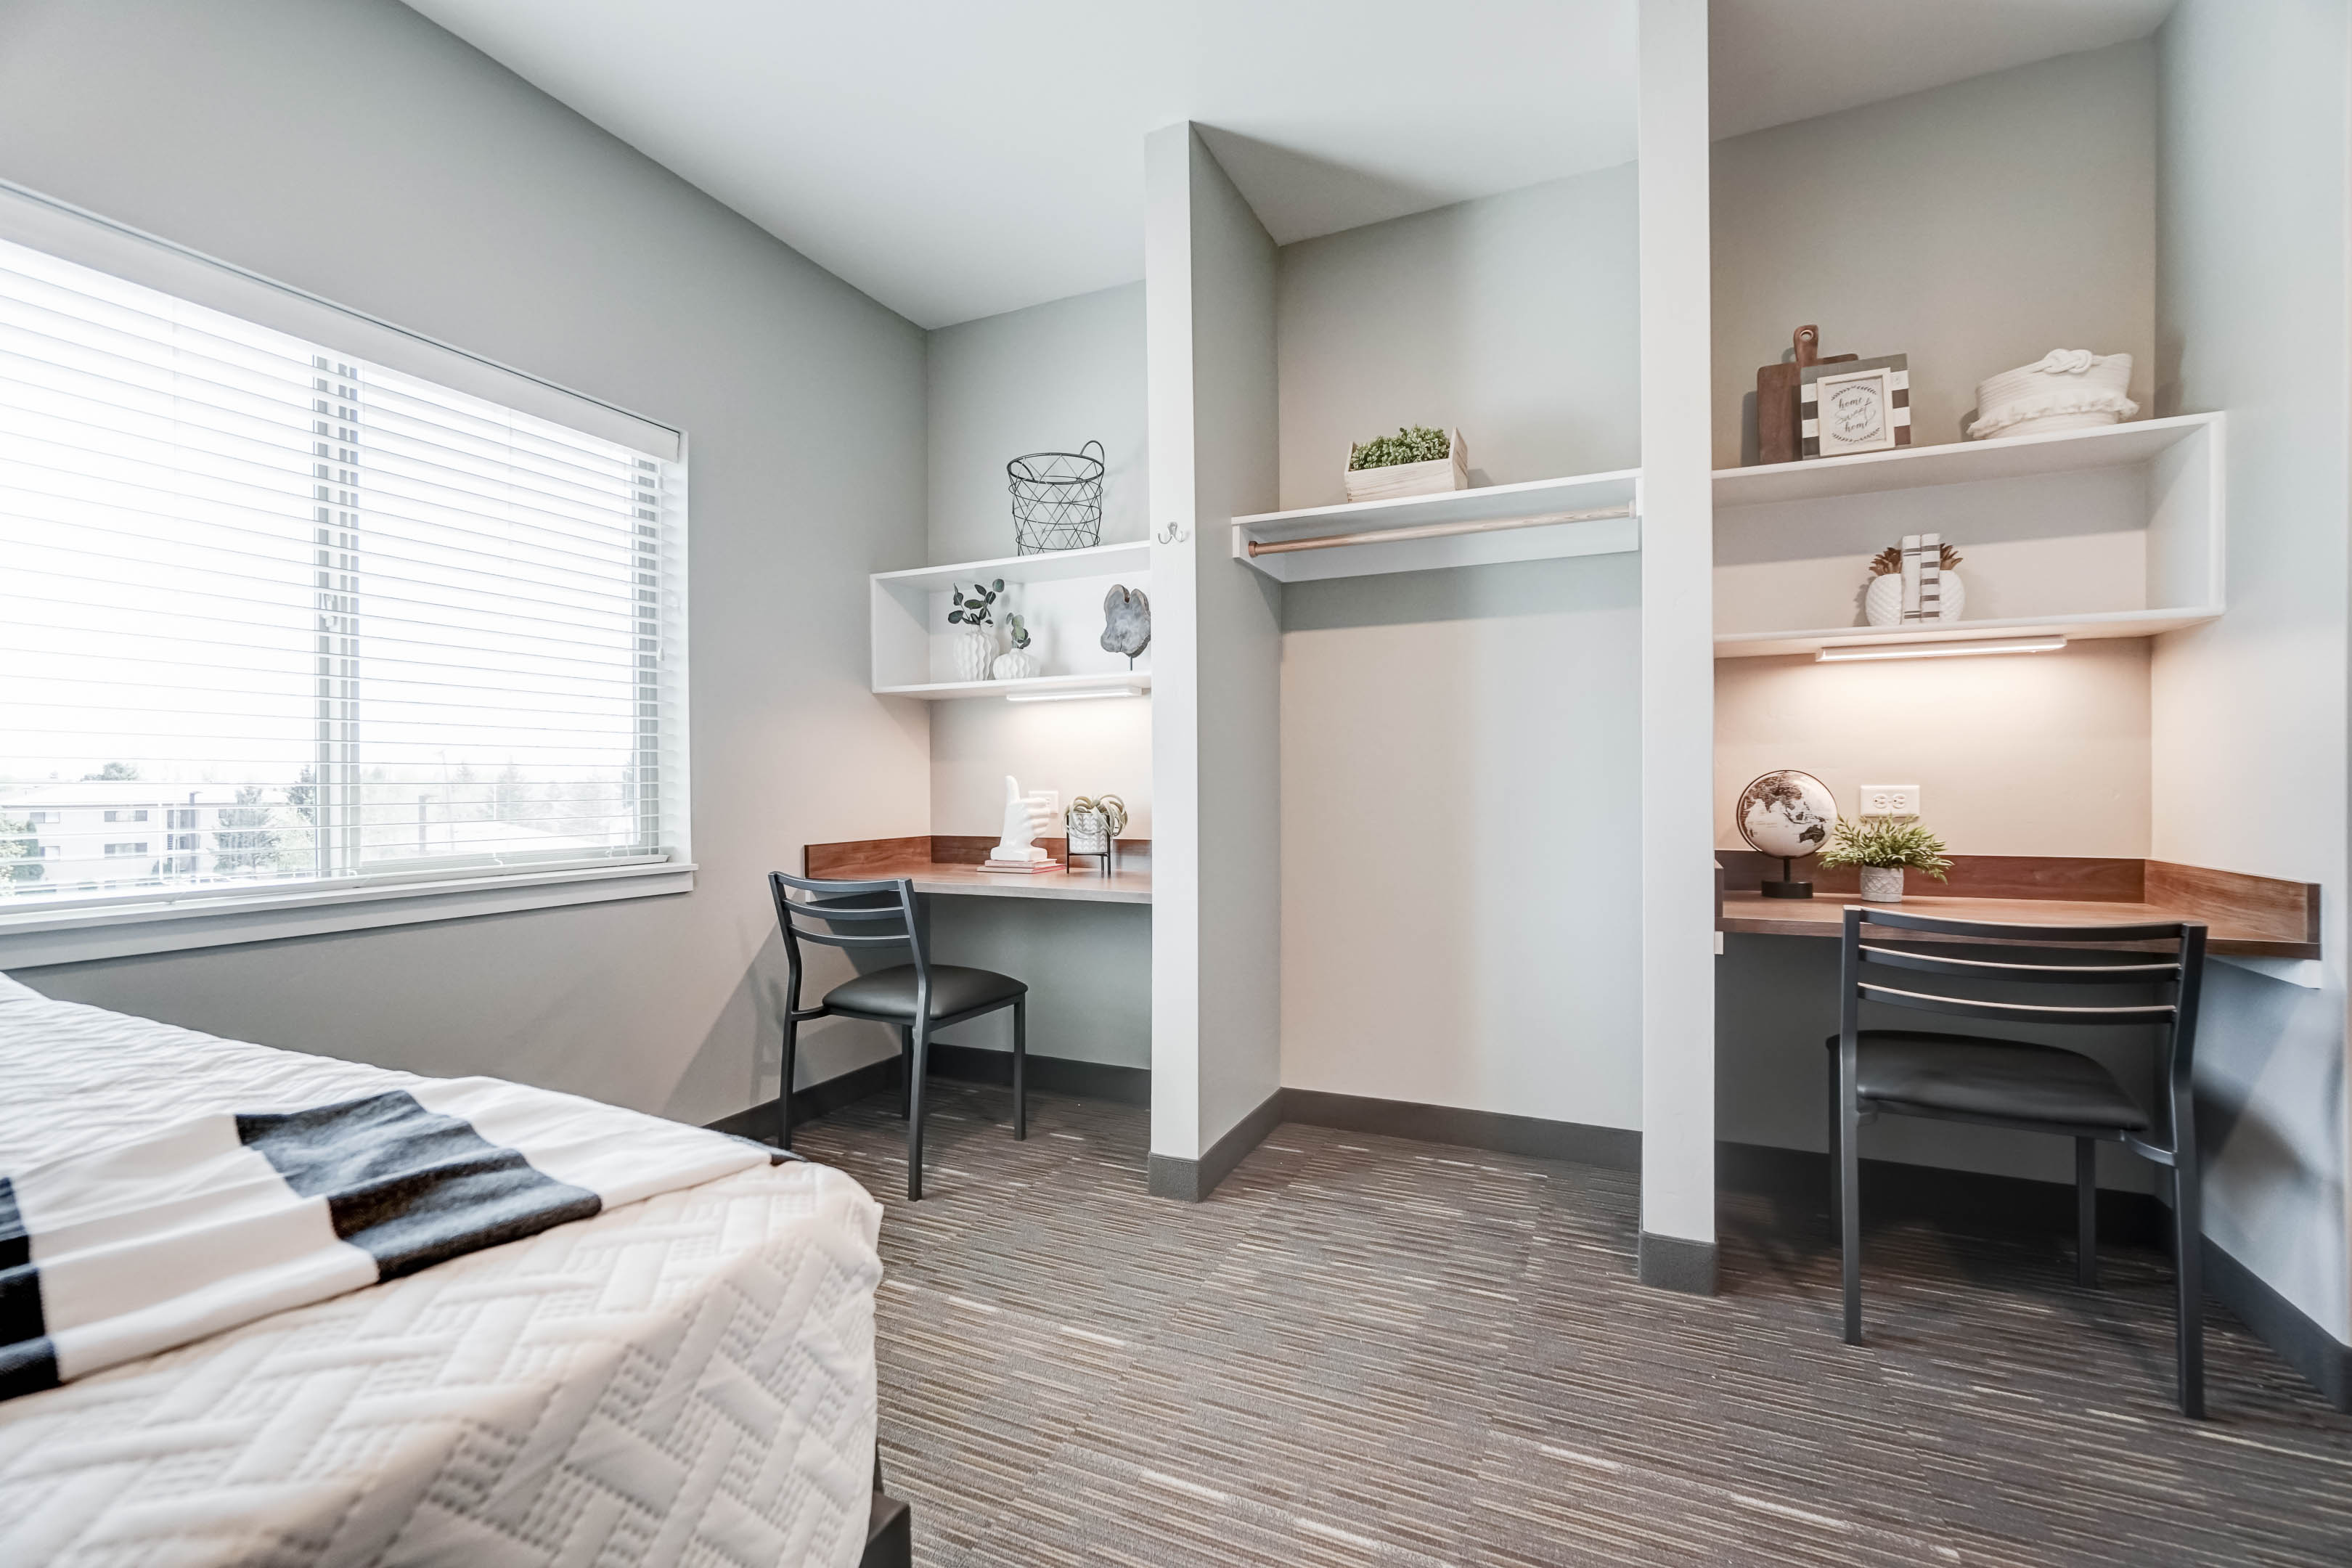 All bedrooms come with built-in desks, personal closets, and lots of storage under the bed.